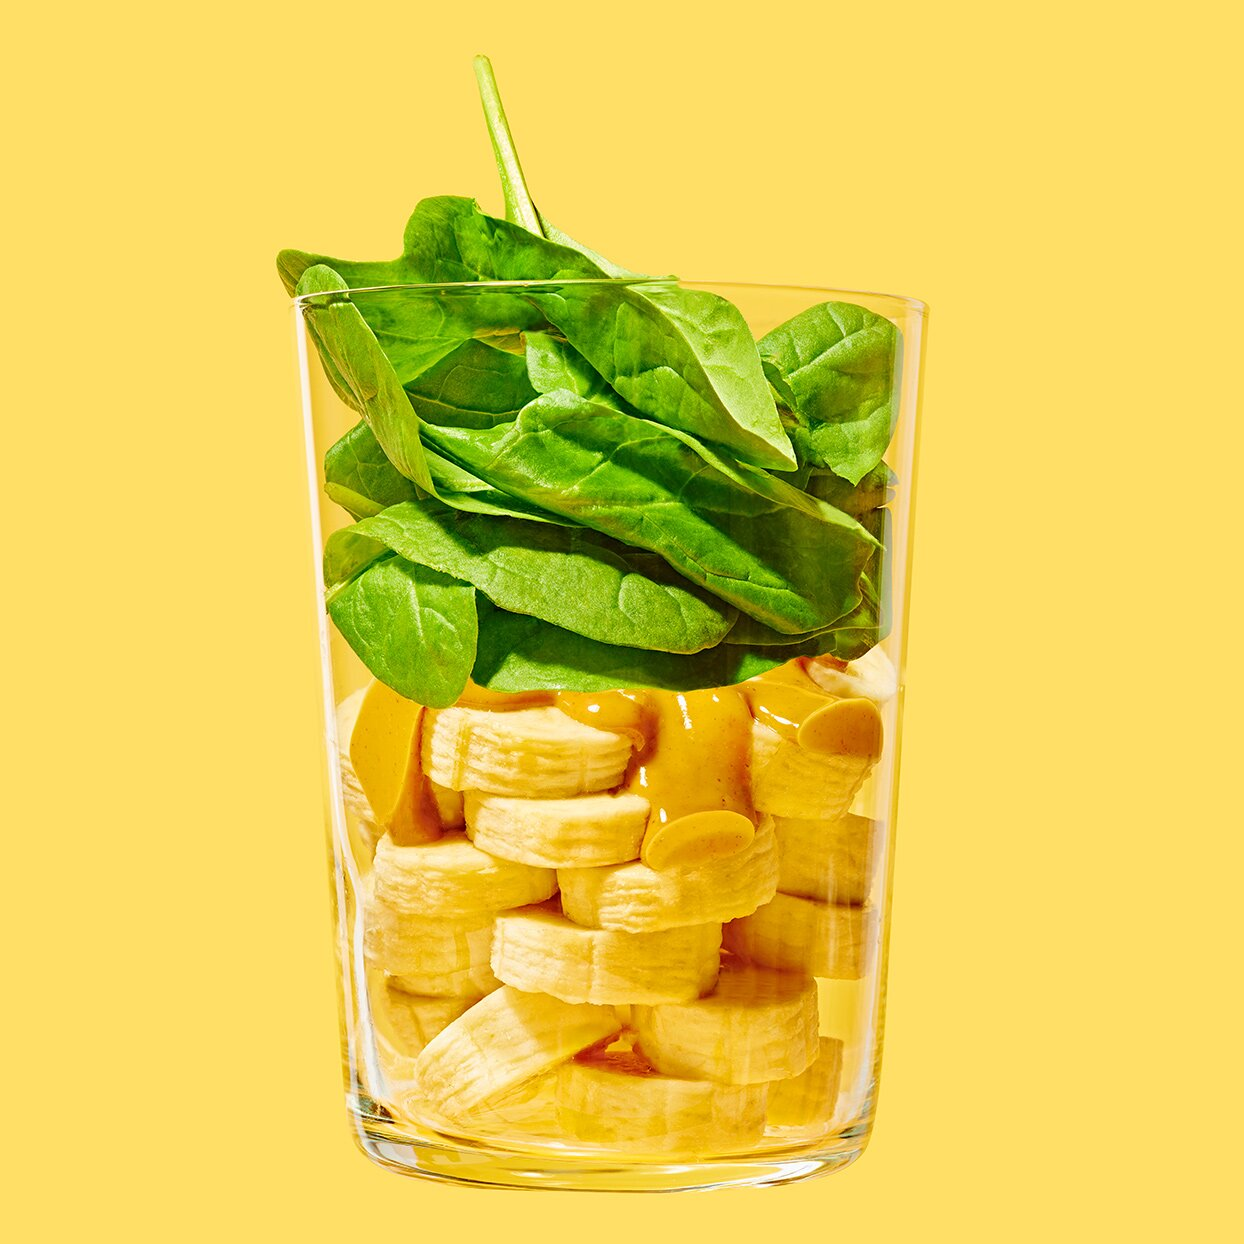 Spinach, Peanut Butter Banana Smoothie